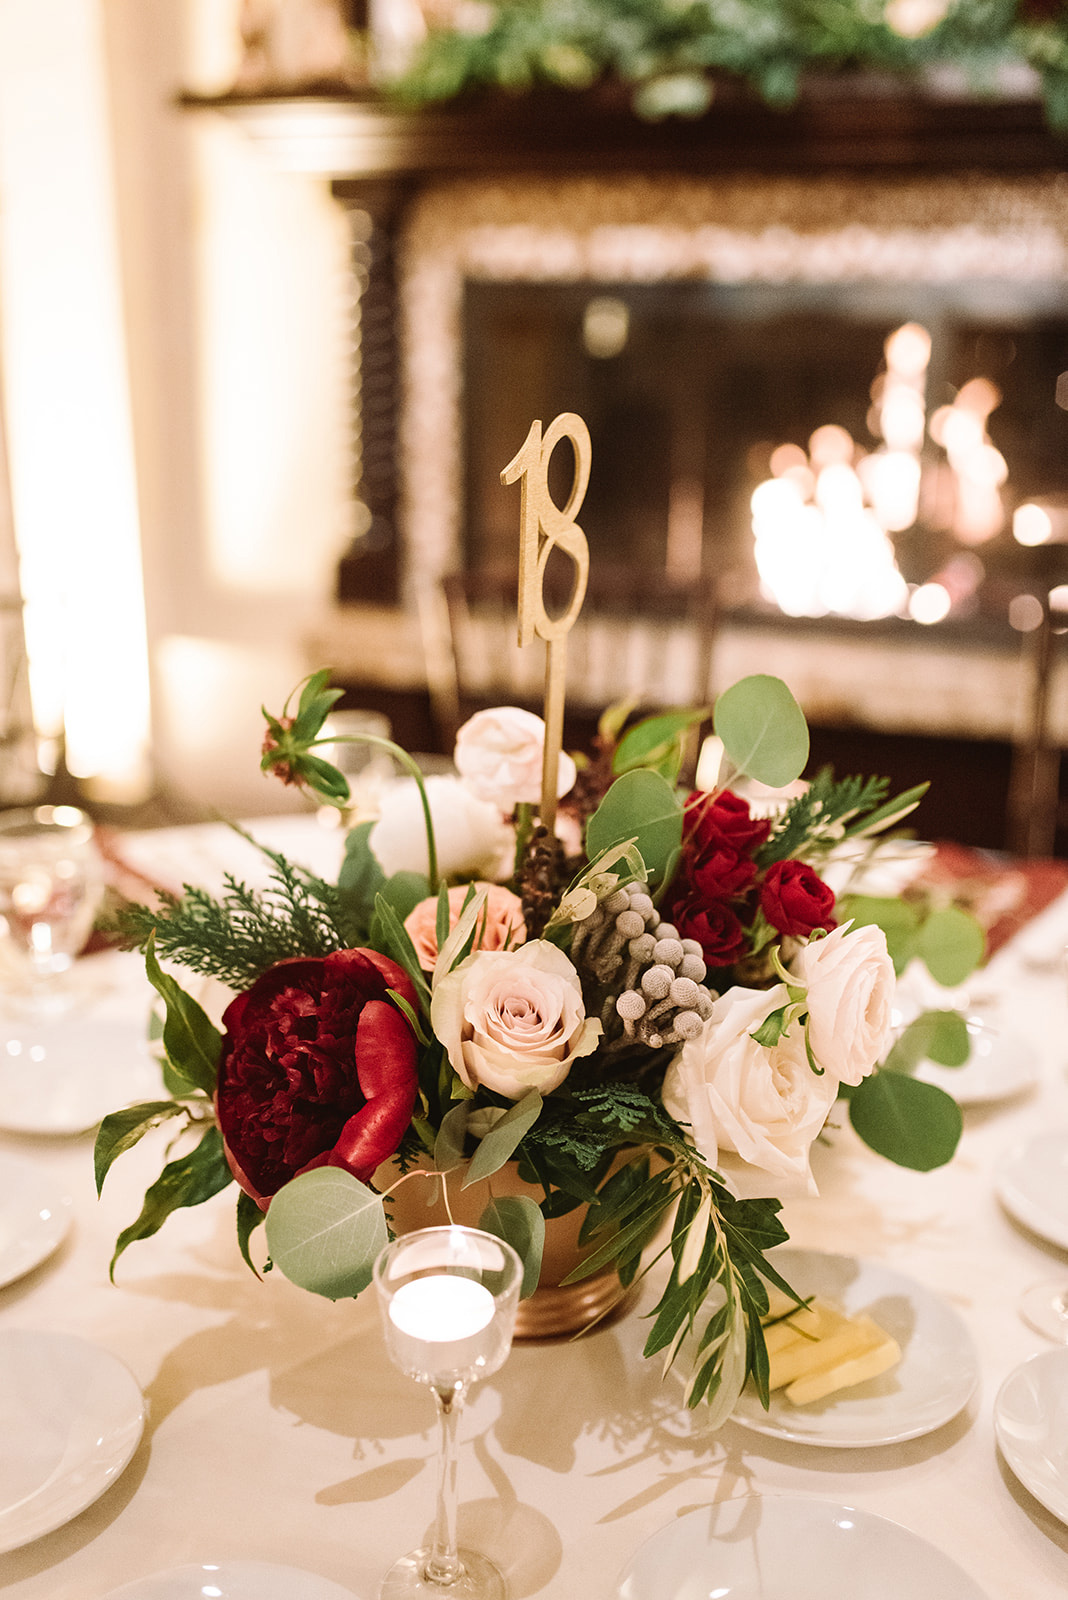 Holiday centerpiece floral display